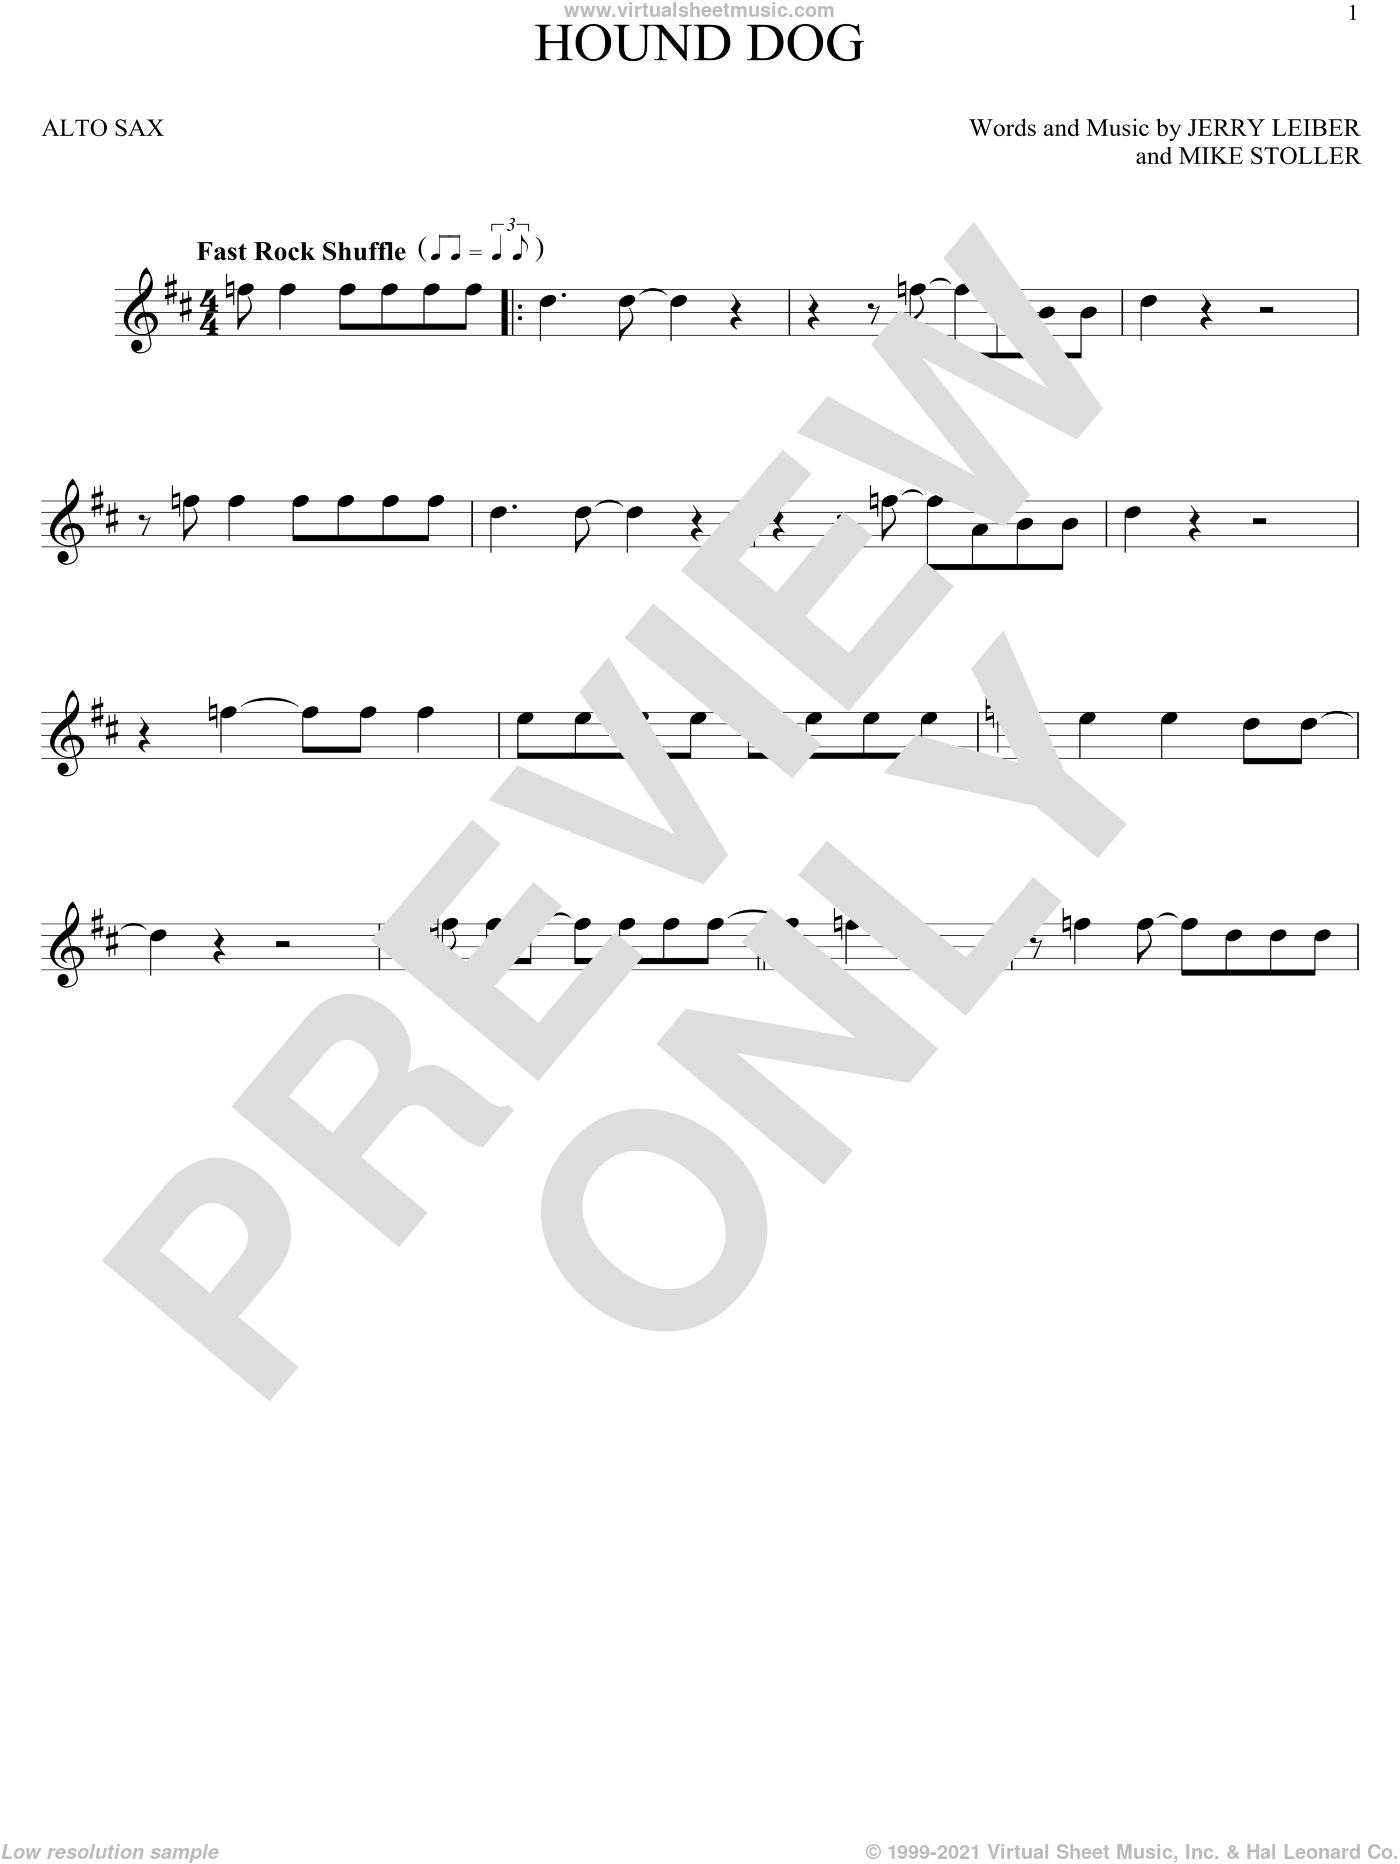 Hound Dog sheet music for alto saxophone solo by Elvis Presley, Jerry Leiber and Mike Stoller, intermediate skill level